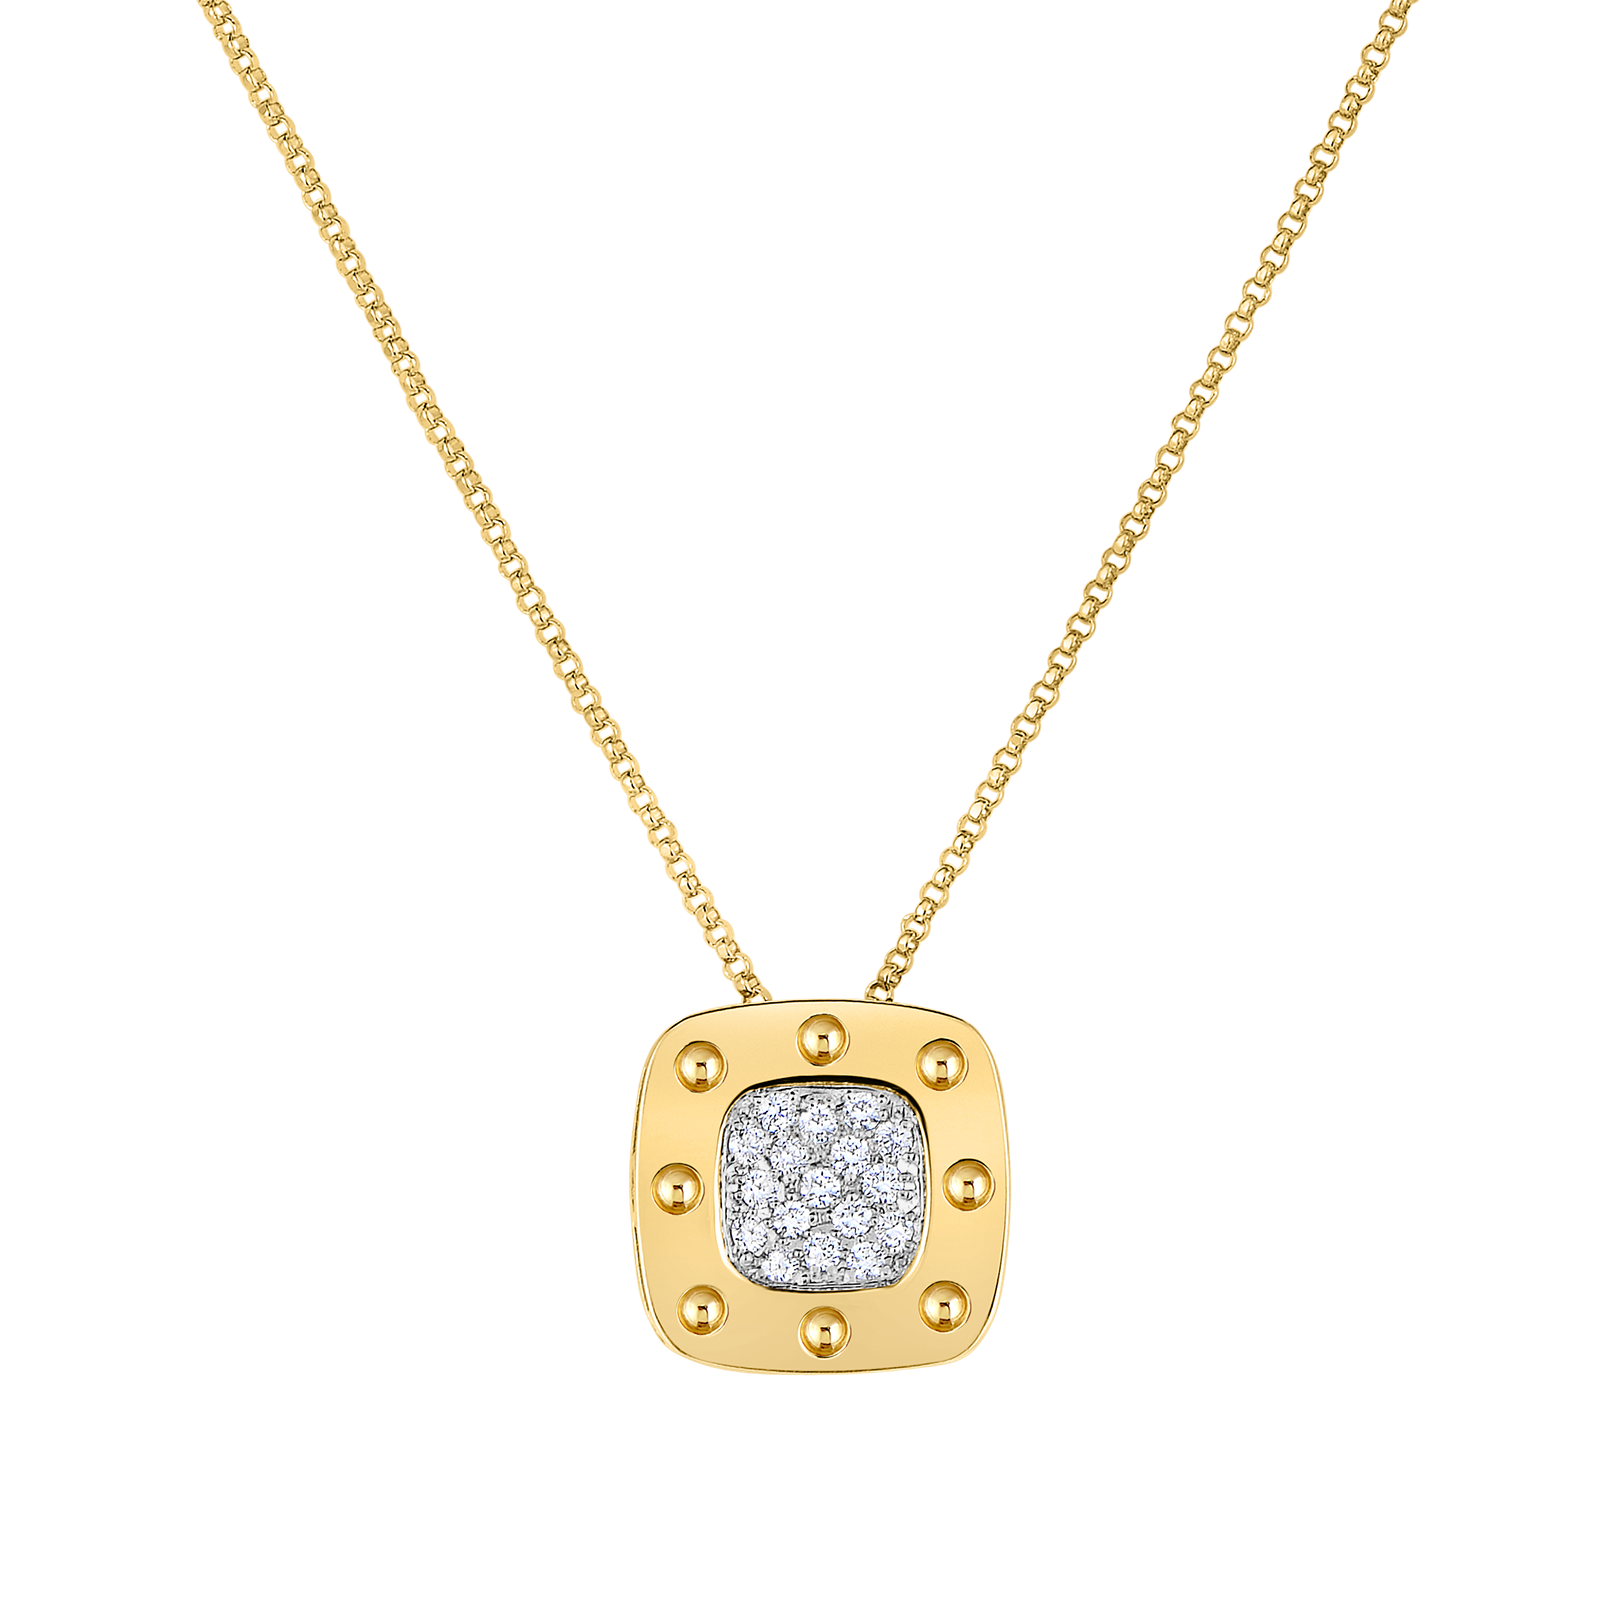 dsc diamond necklace square pave pendant